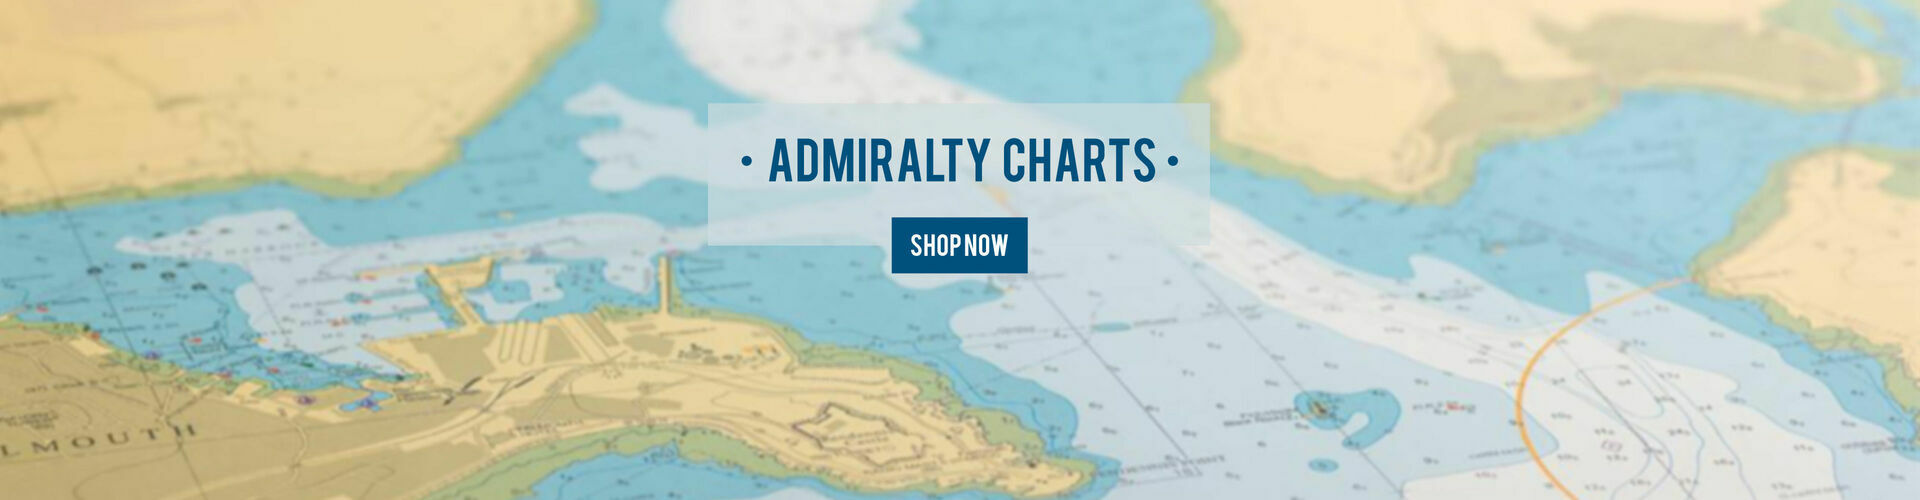 Admiralty Charts